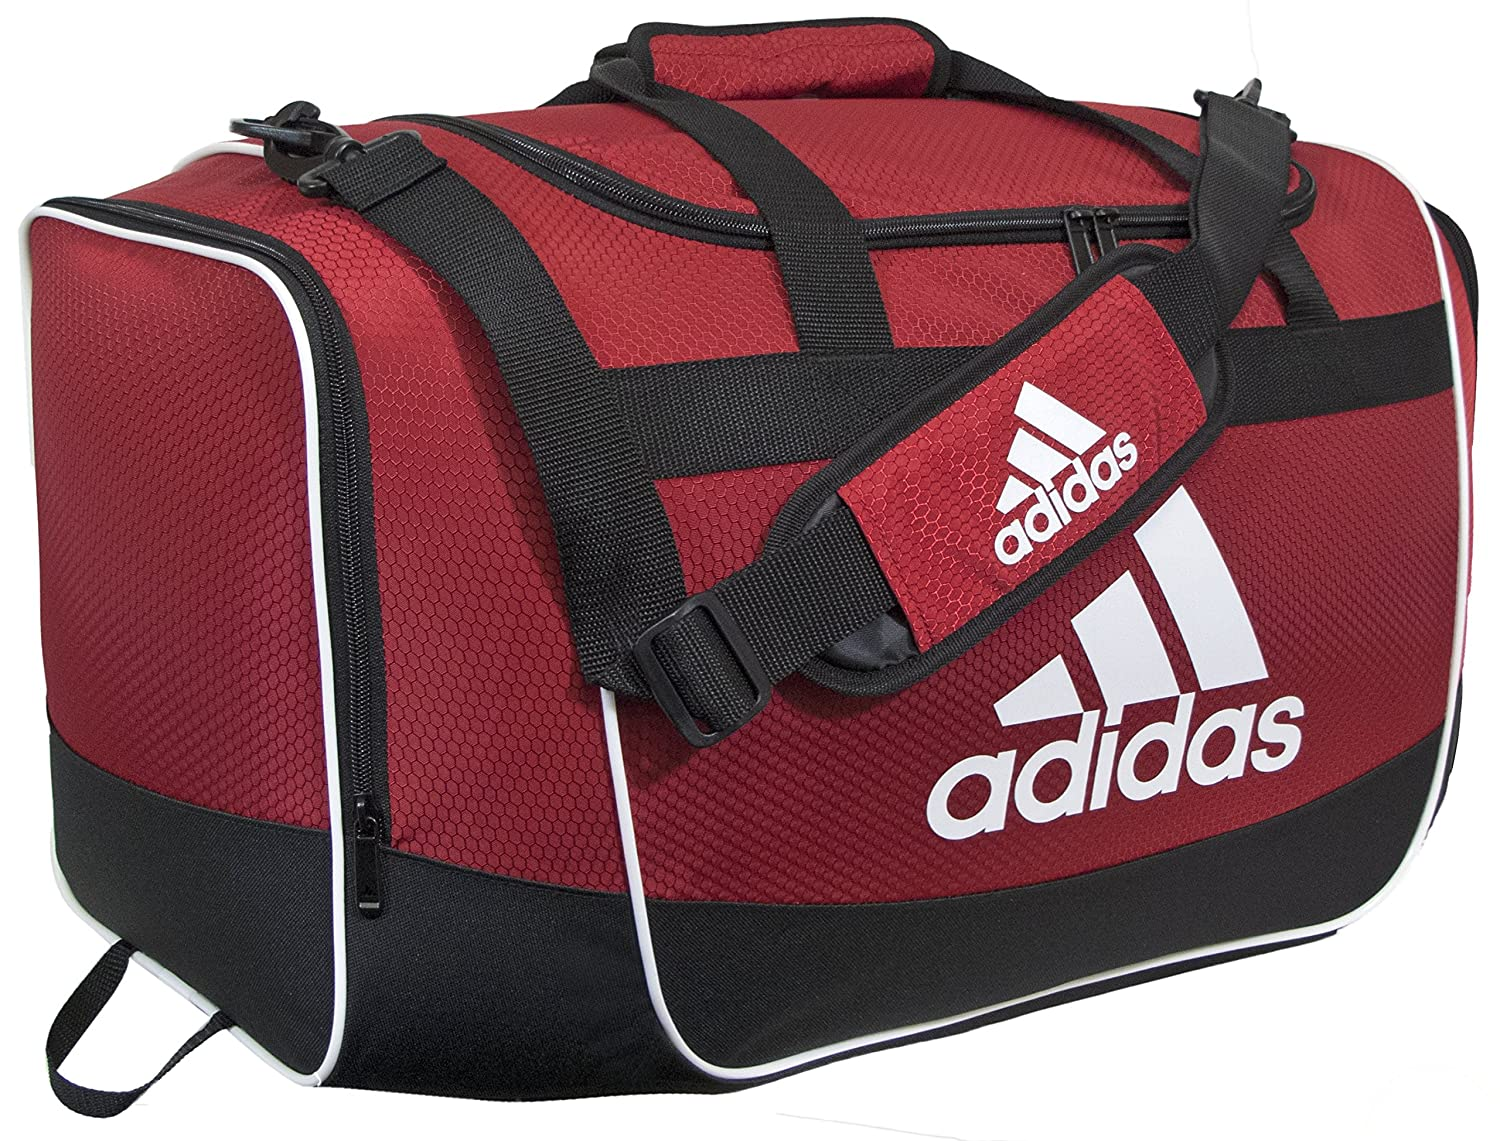 59d3d87fae adidas Unisex Defender II Duffel Bag 6pm adidas Bags for Christmas